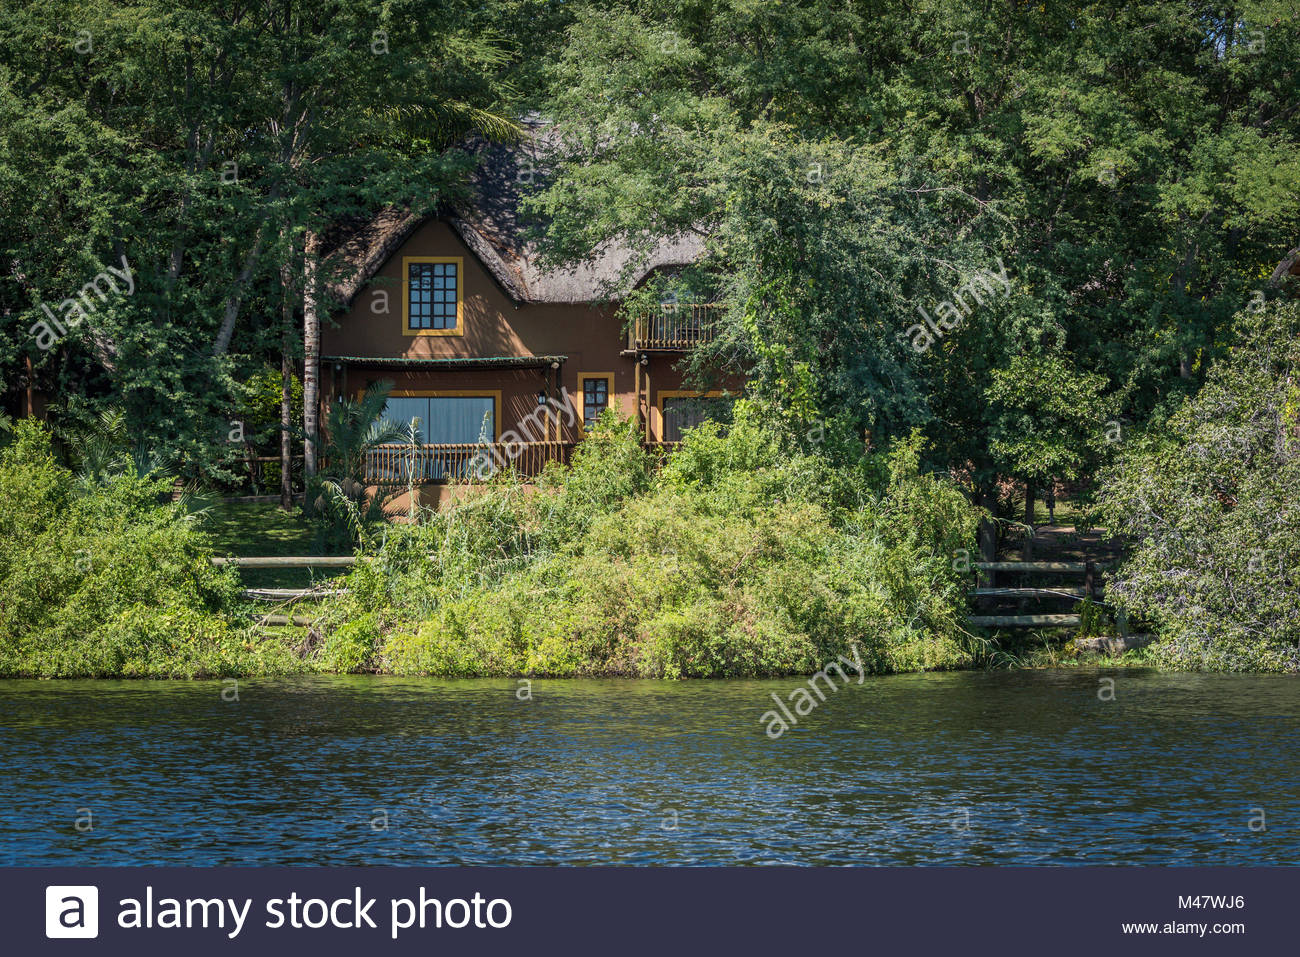 Brown thatched villa in trees on riverbank - Stock Image